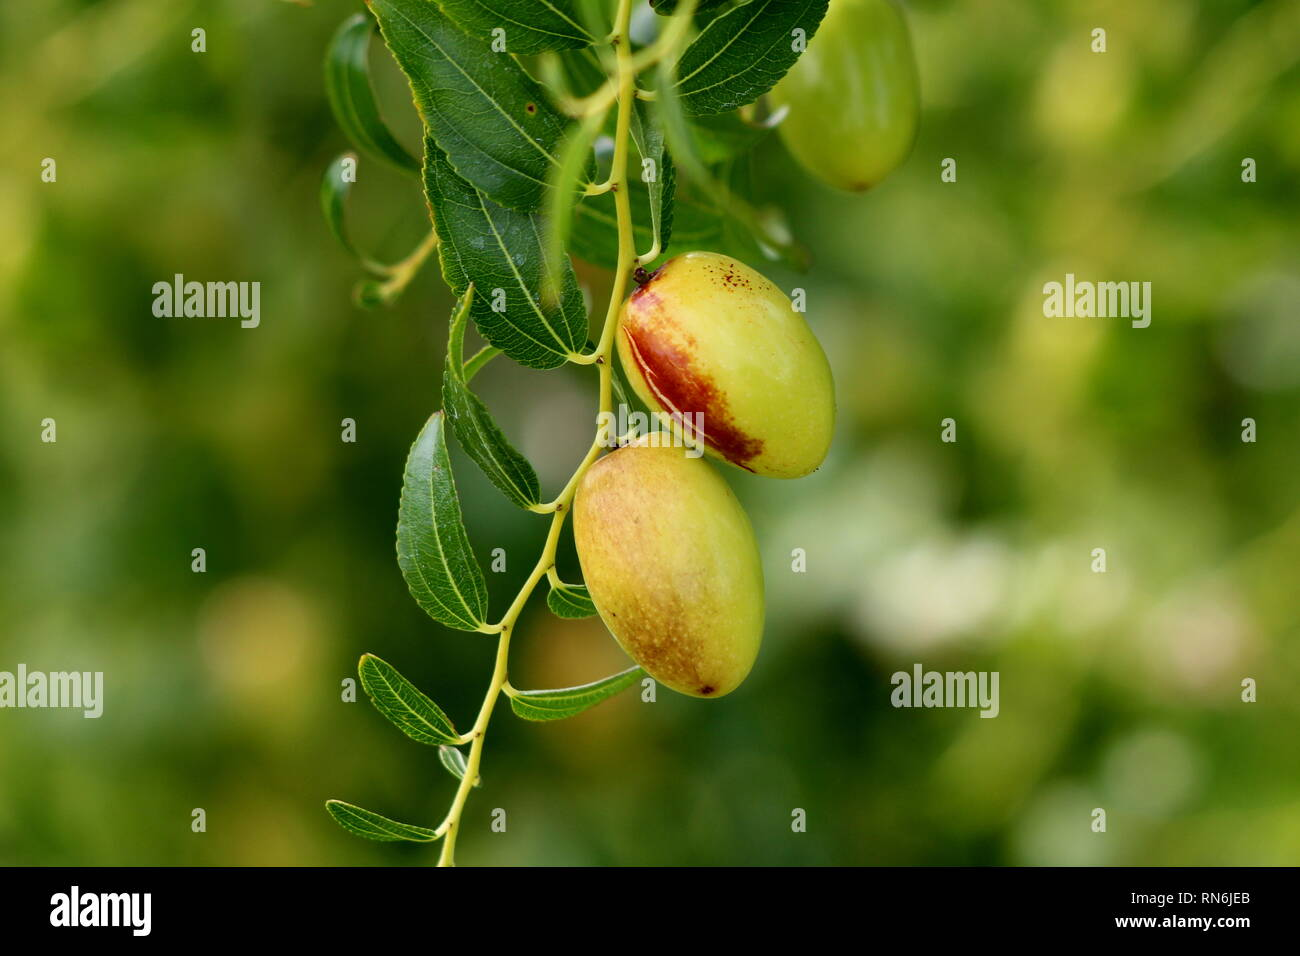 Jujube small deciduous tree with shiny green ovate acute leaves with three conspicuous veins at the base and a finely toothed margin - Stock Image